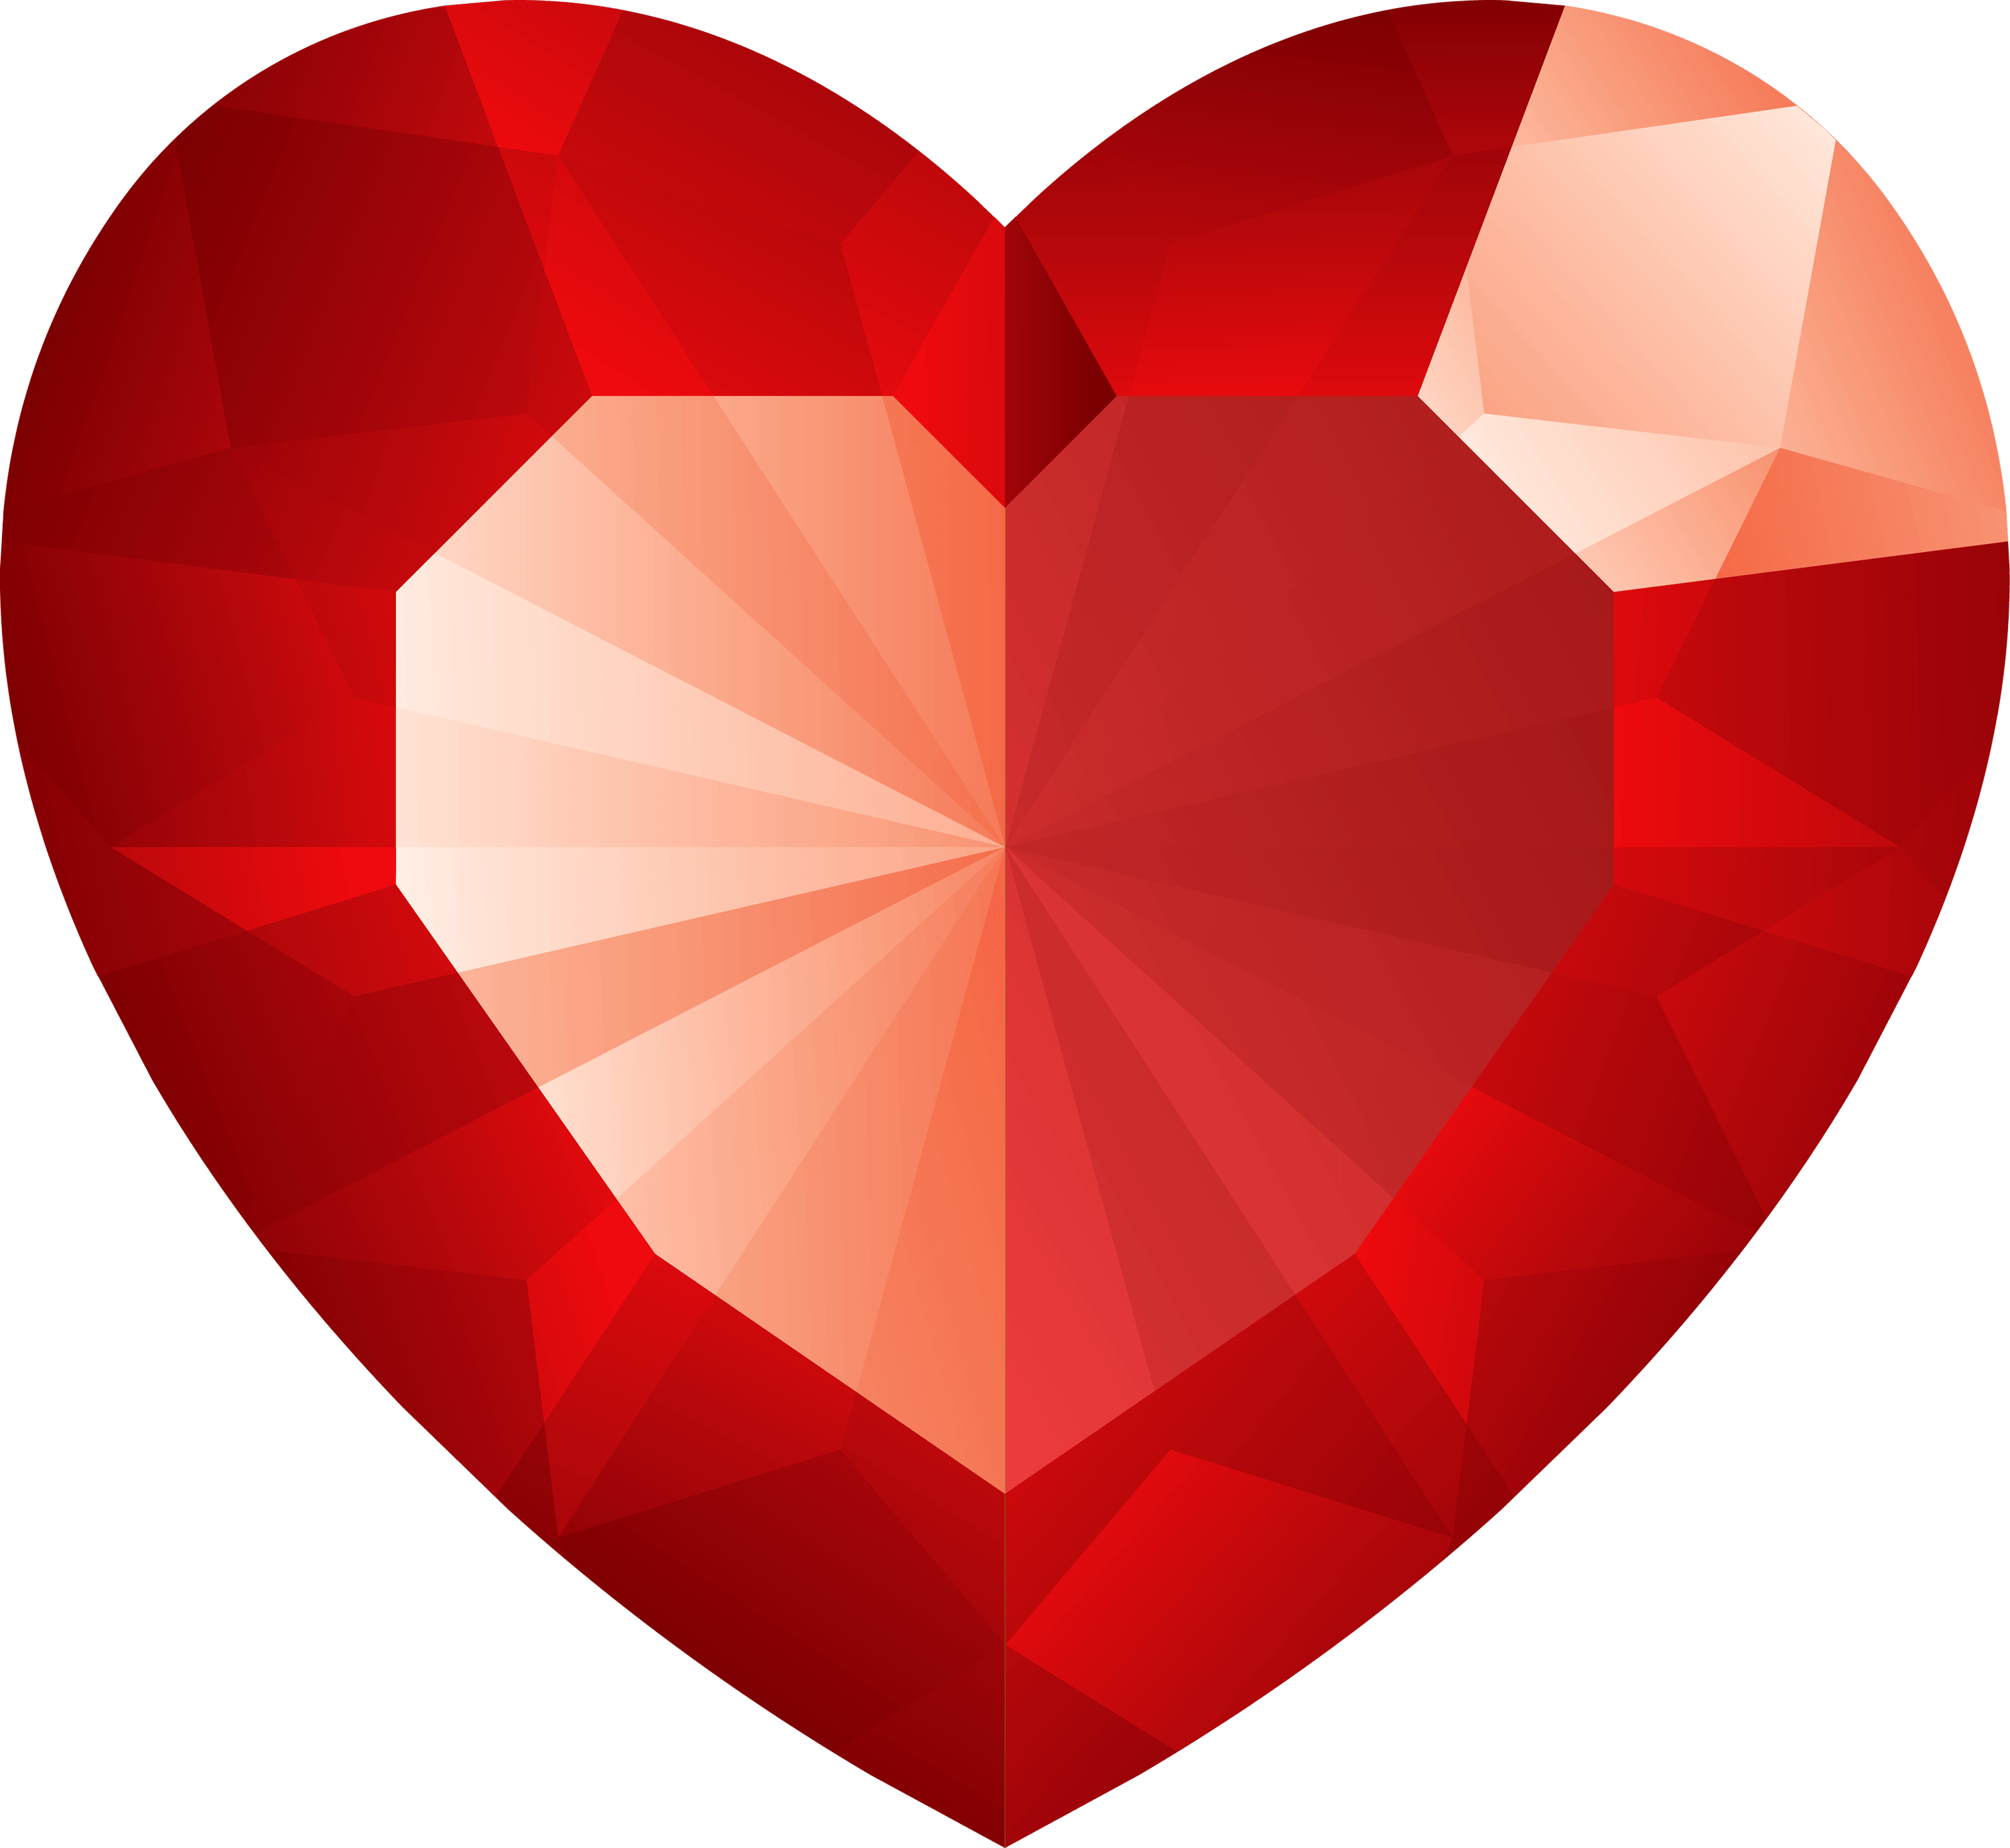 Diamond heart. Transparent png stickpng